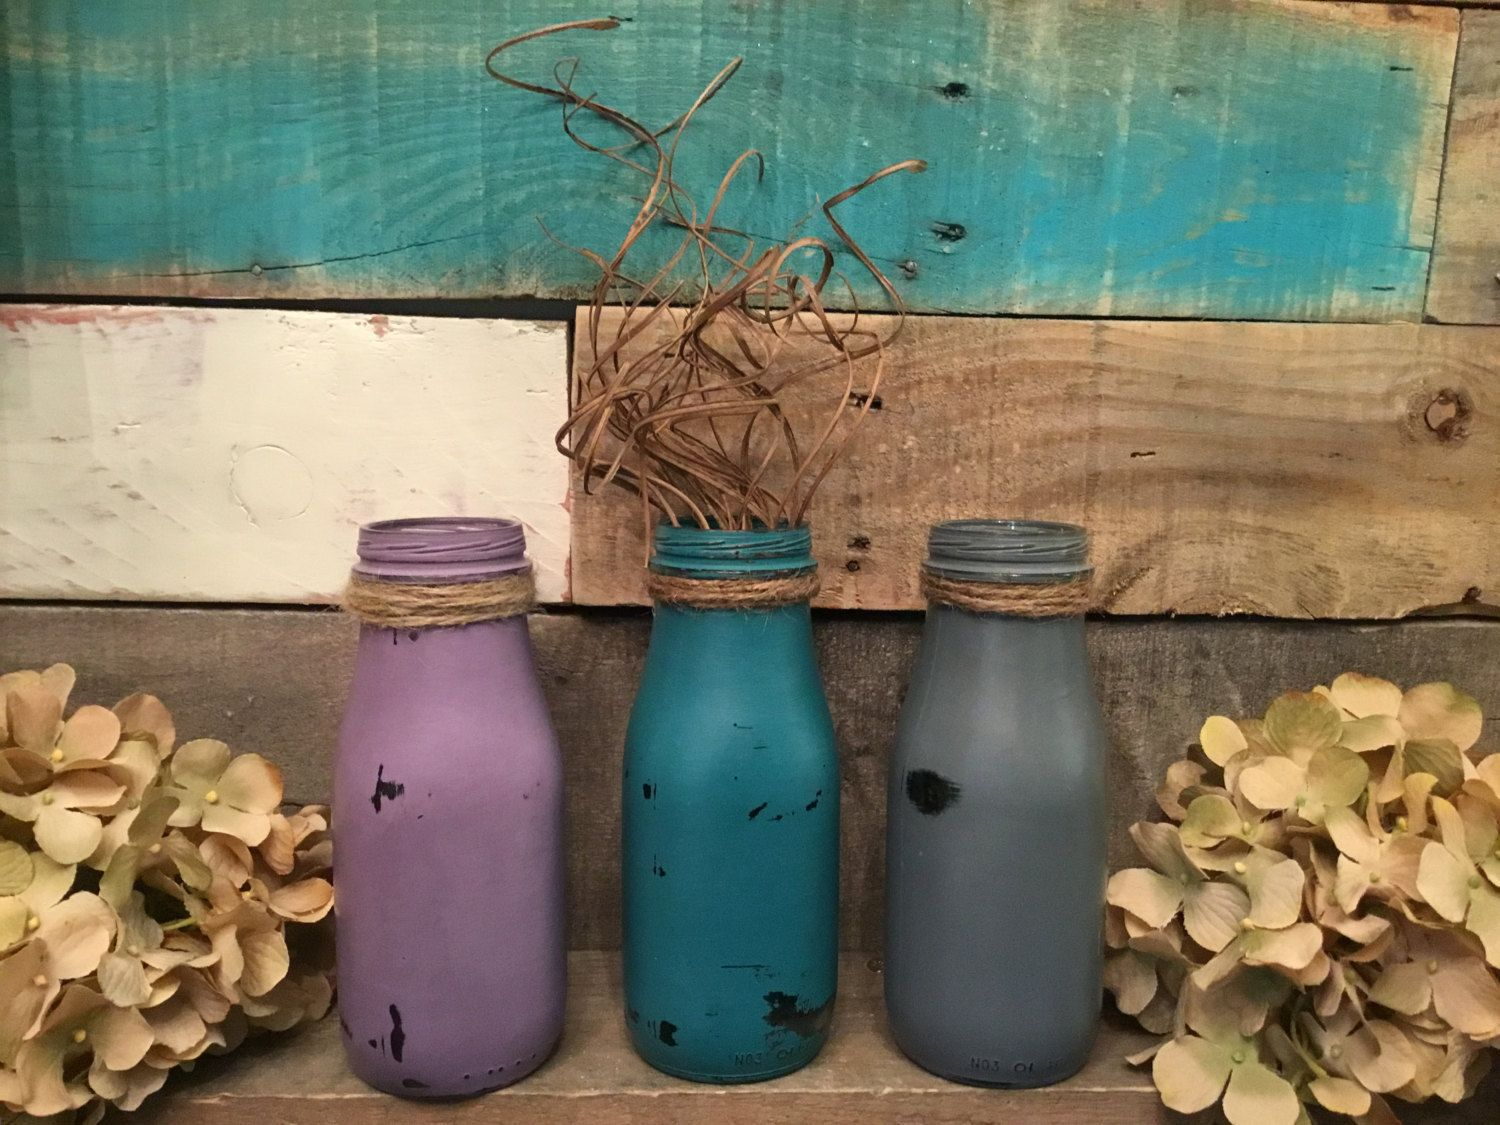 3 milk bottle vases shabby chic decor table centerpiece rustic 3 milk bottle vases shabby chic decor table centerpiece rustic decor distressed reviewsmspy